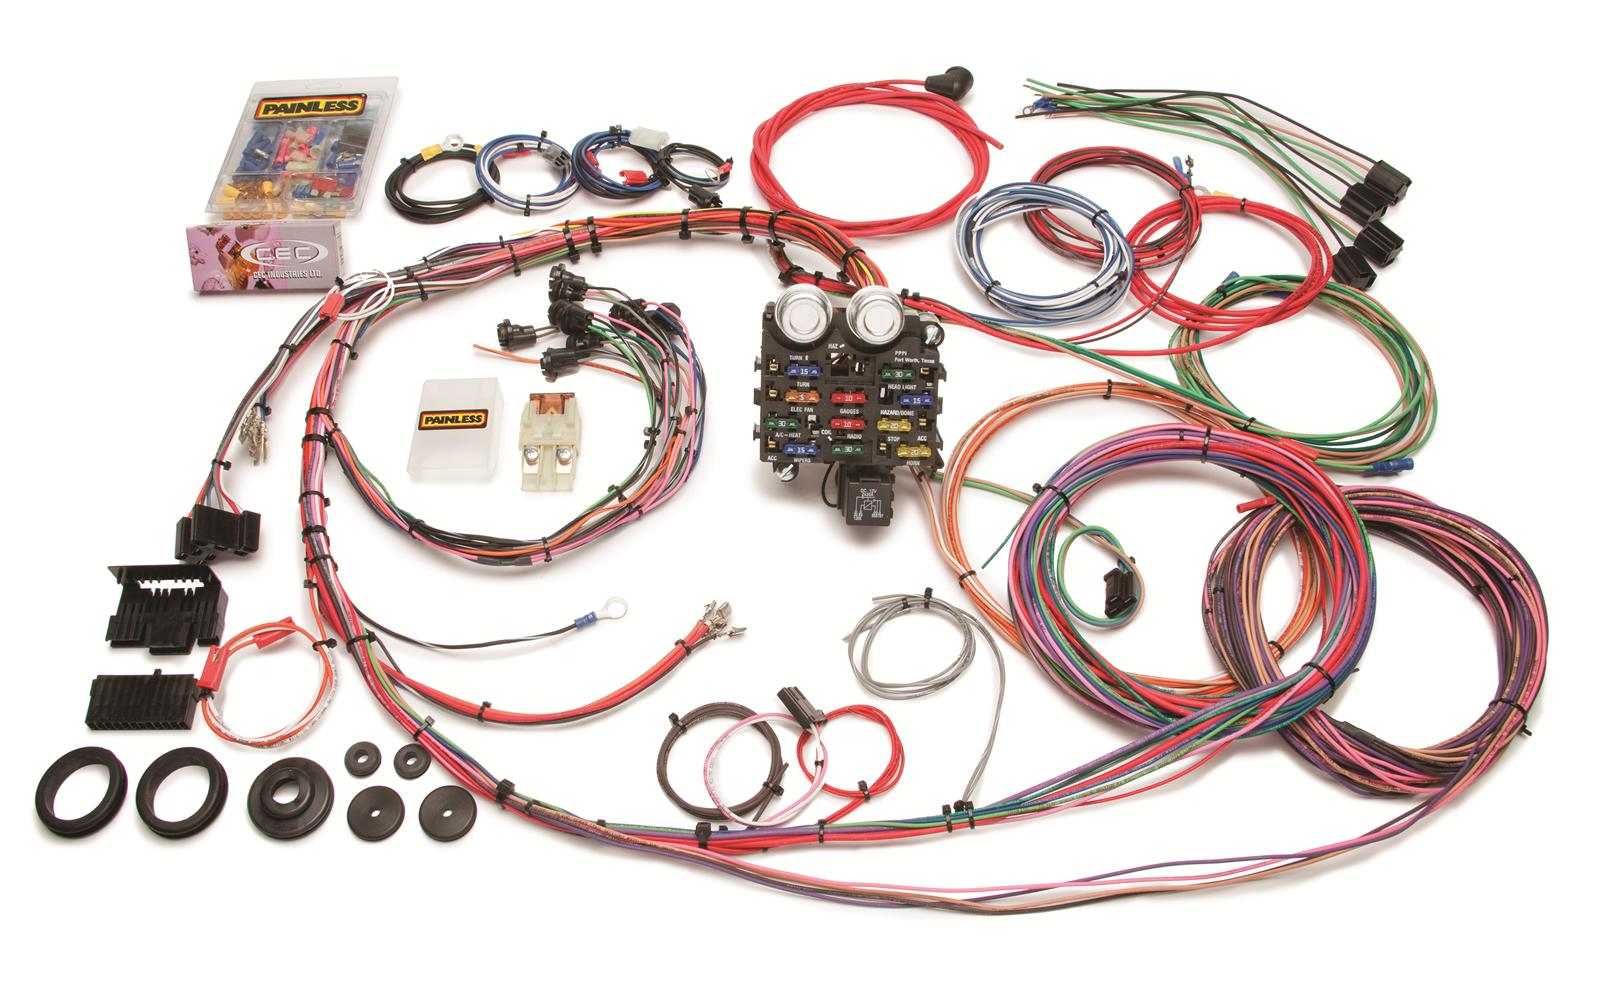 prf 10112_xl painless performance 19 circuit gmc chevy truck harnesses 10112 gm truck wiring harness at bayanpartner.co